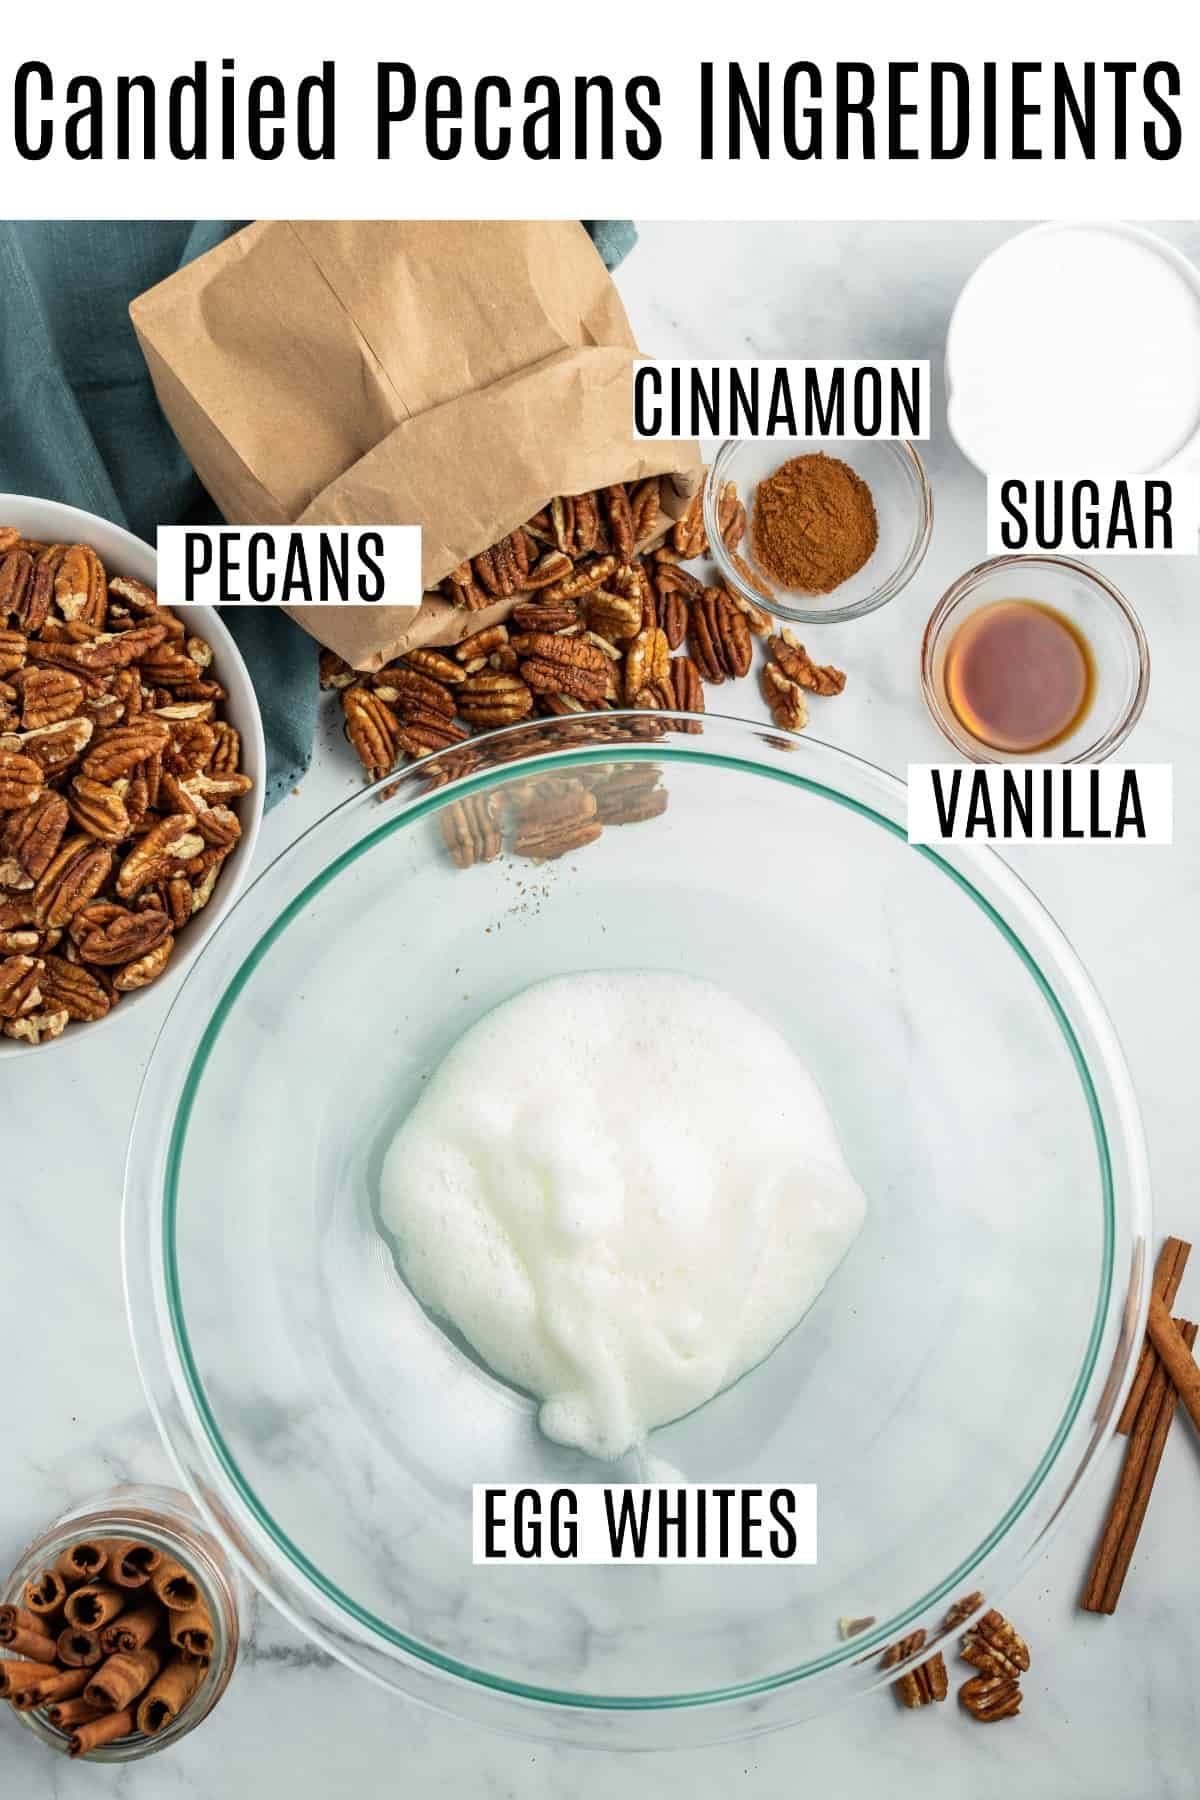 Ingredients needed for candied pecans, including egg whites, sugar, and cinnamon!